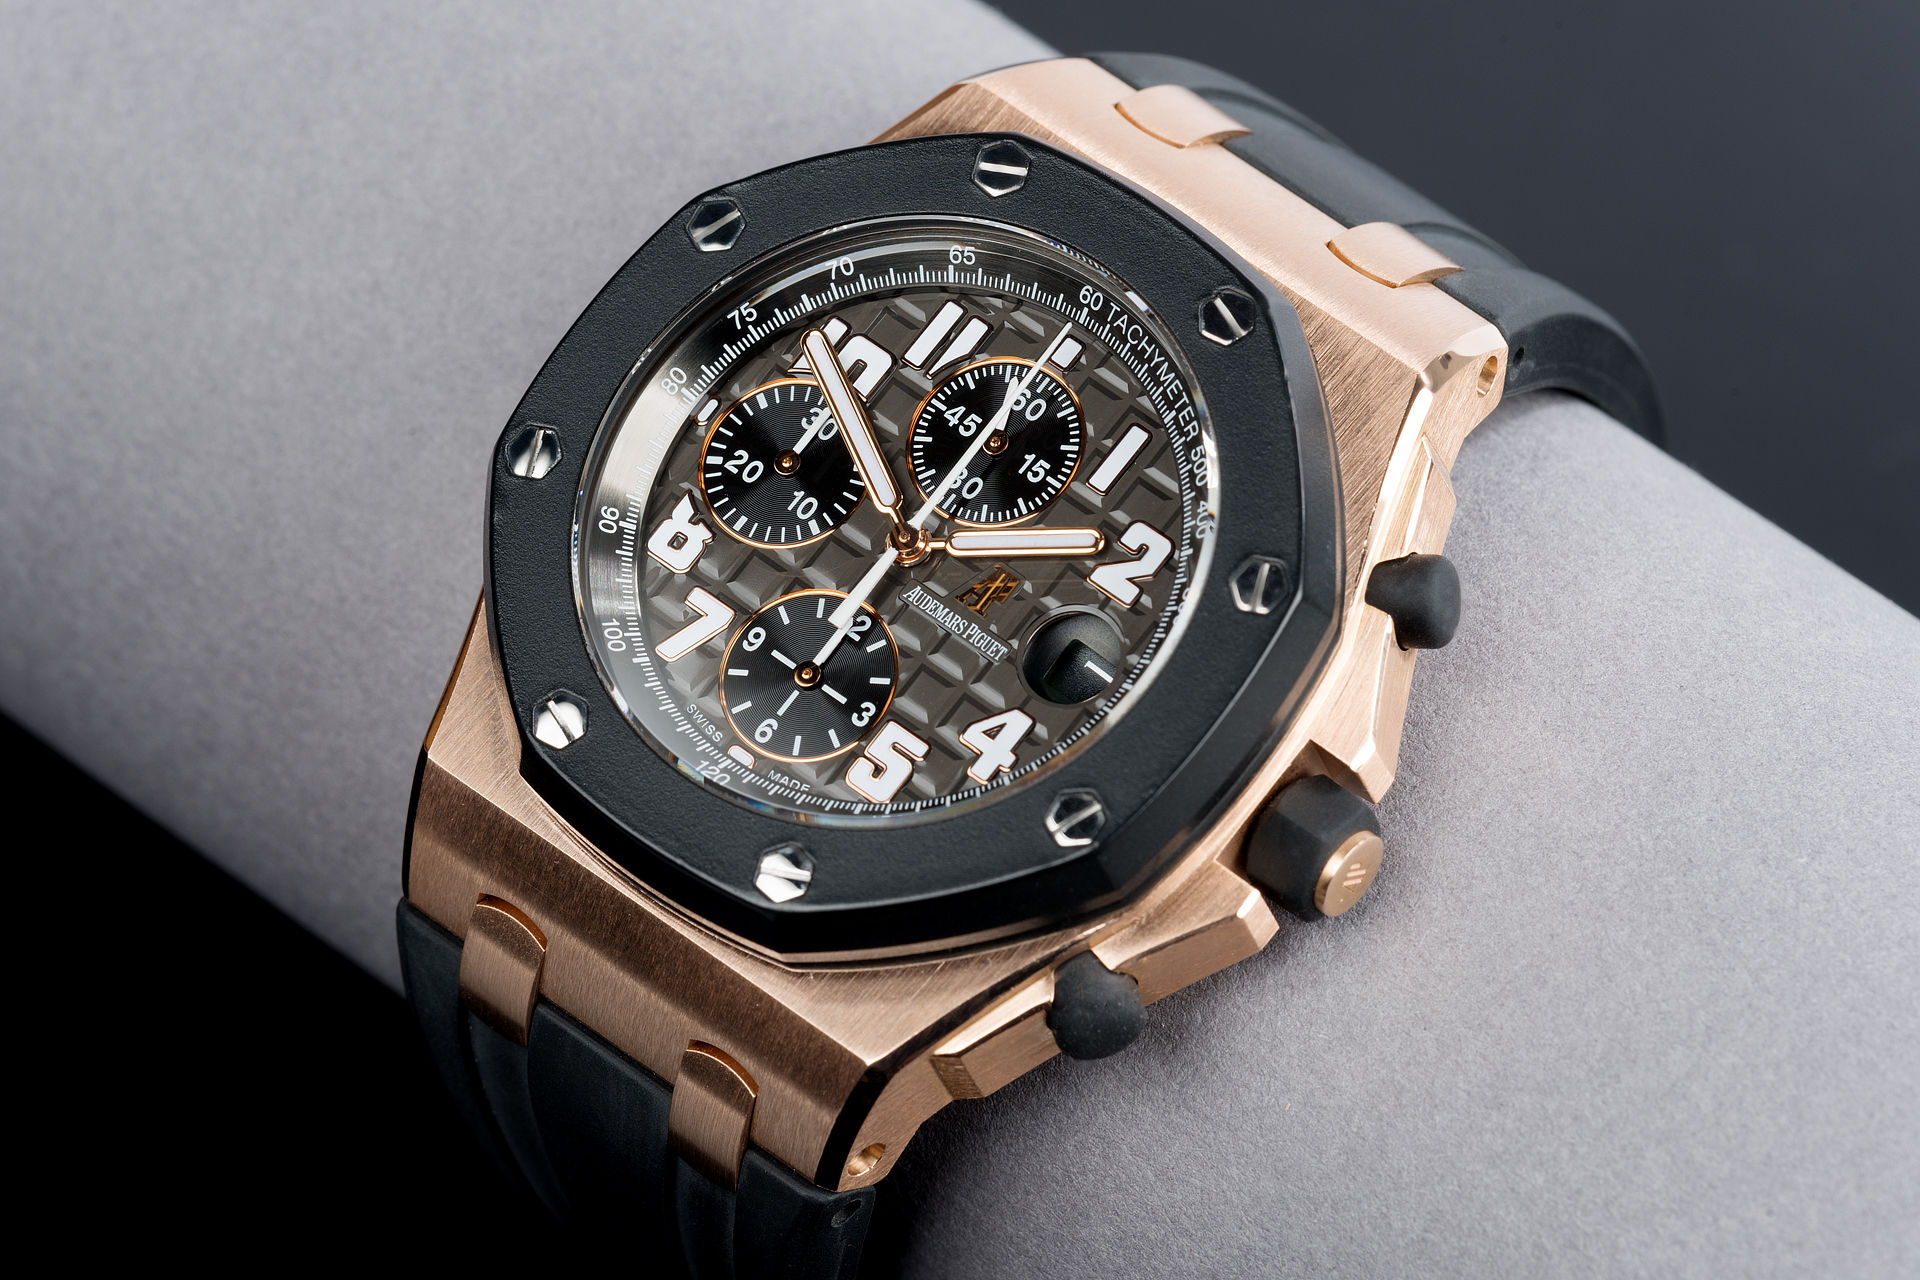 ref 25940OK.OO.D002CA.02 | 42mm 'Full Set' Rubber-Clad | Audemars Piguet Royal Oak Offshore